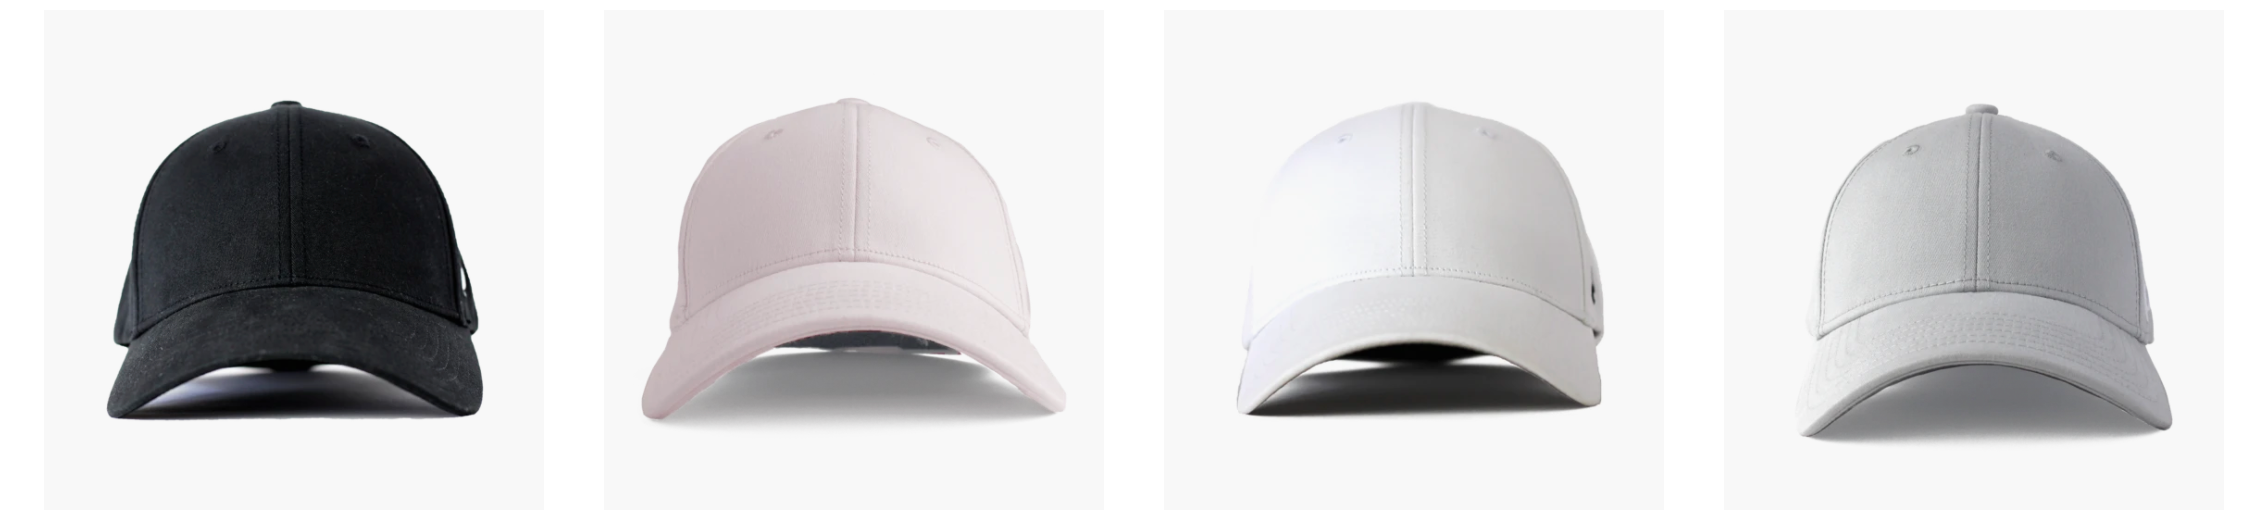 picture of four hats in black, pink, white, and grey